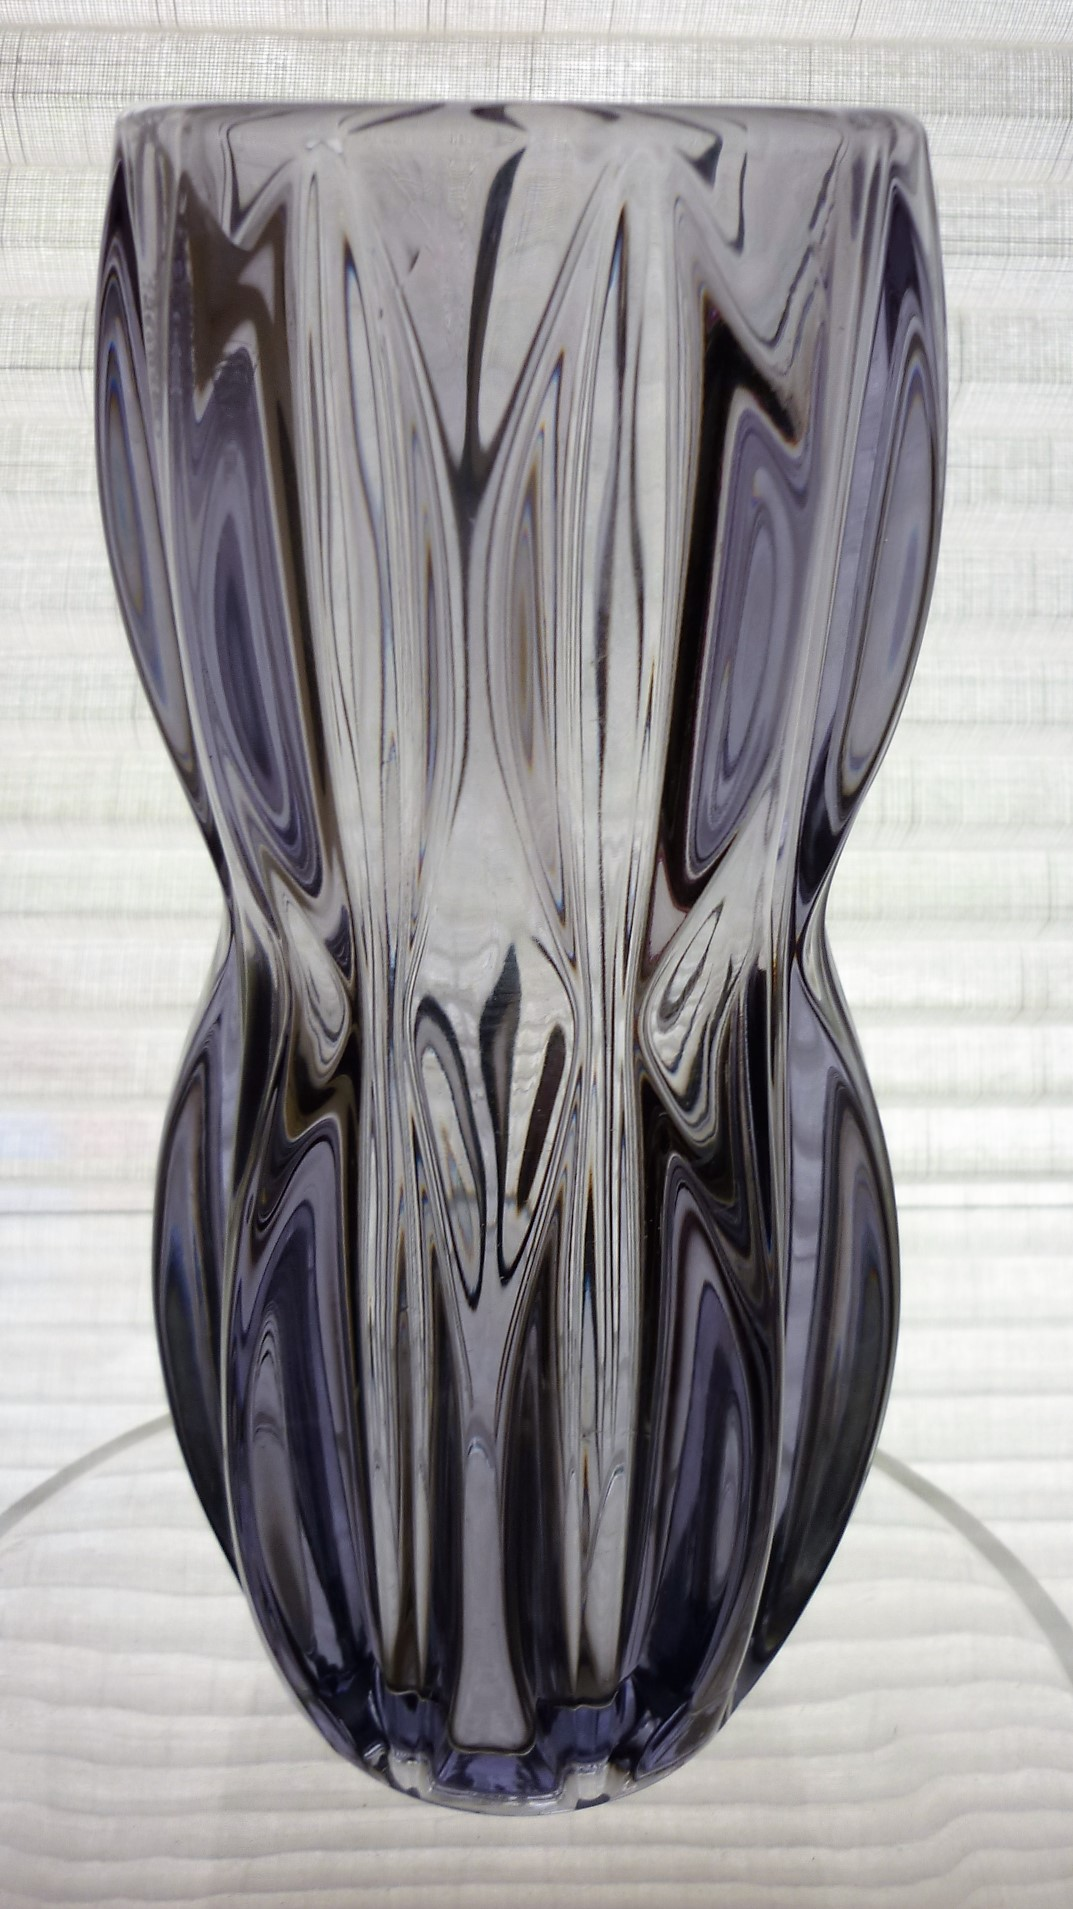 Sklo Union iconic Ypsilon vase. Designed by Jan Schmidt in the 1960s